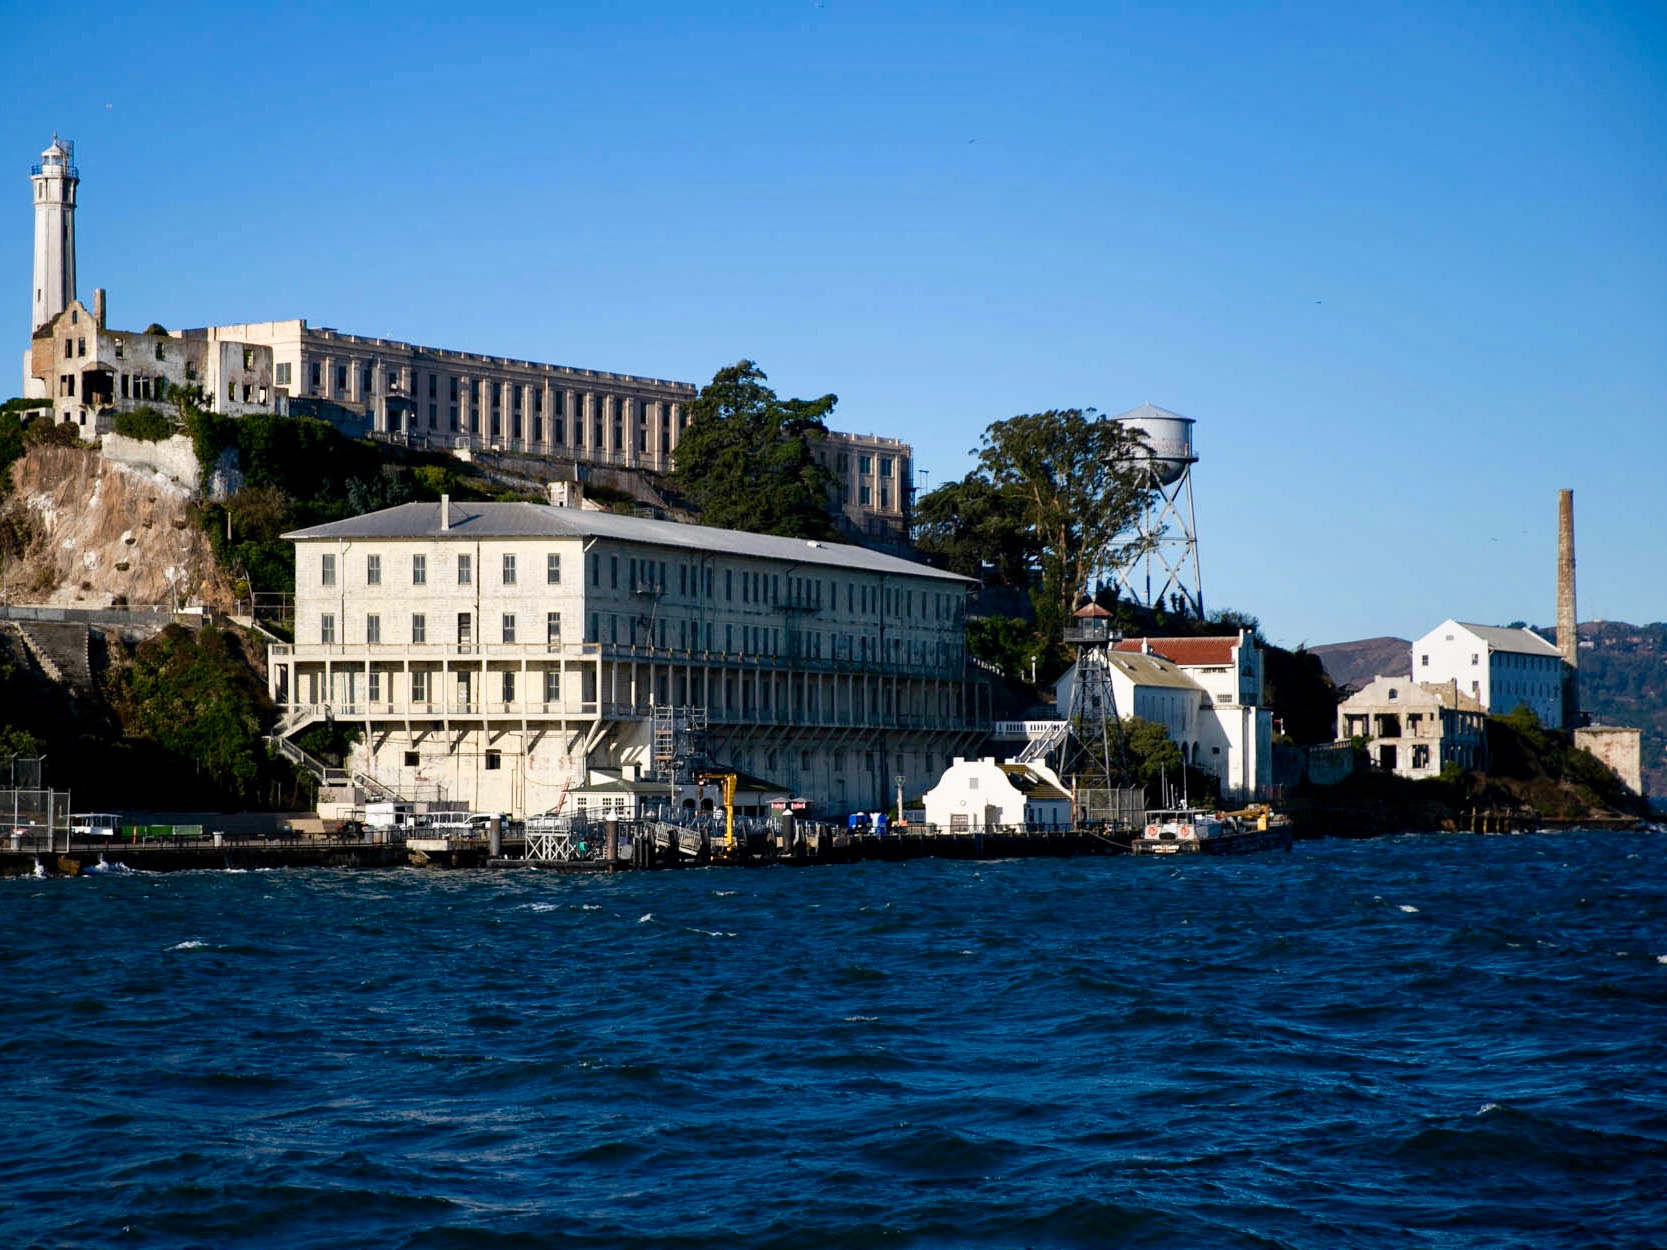 Return to 'the Rock': Alcatraz occupier retraces steps on 50th anniversary